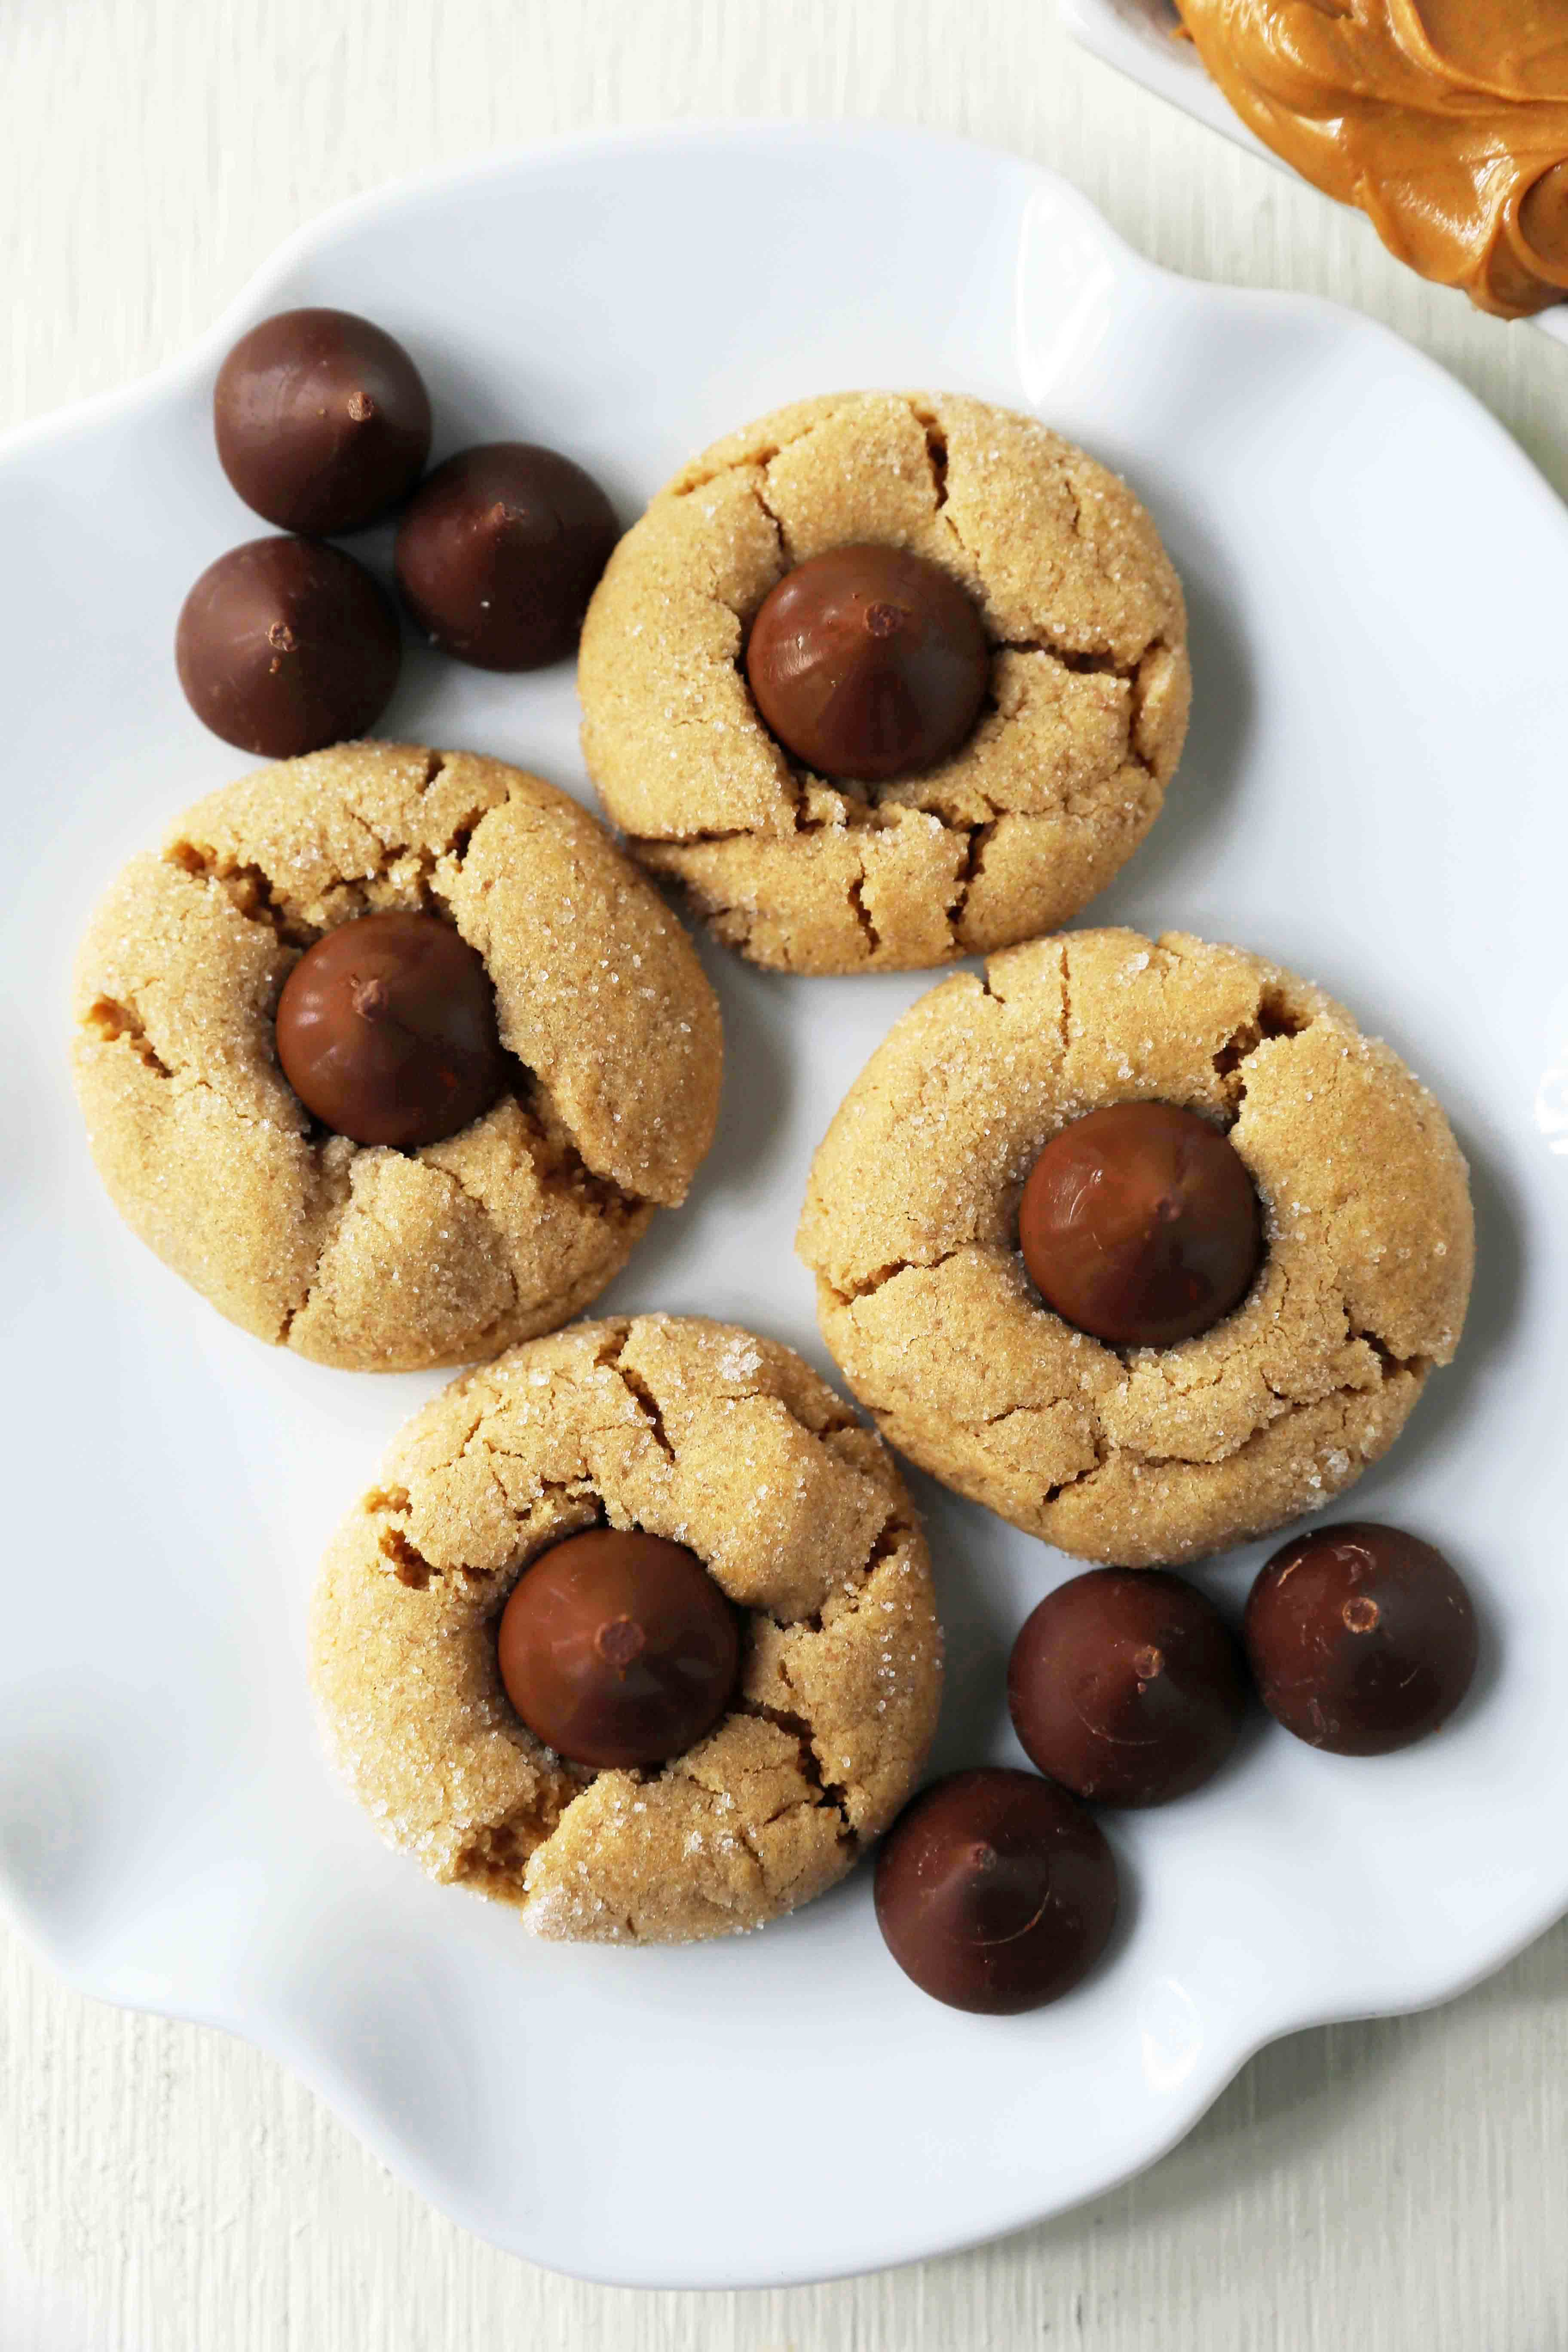 Peanut Butter Blossoms Cookies. Peanut Butter Chocolate Kiss Cookies are such a popular cookie recipe. Everyone loves these Kiss Cookies! www.modernhoney.com #chocolatepeanutbuttercookies #kisscookies #chocolatekisscookies #peanutbuttercookies #christmascookies